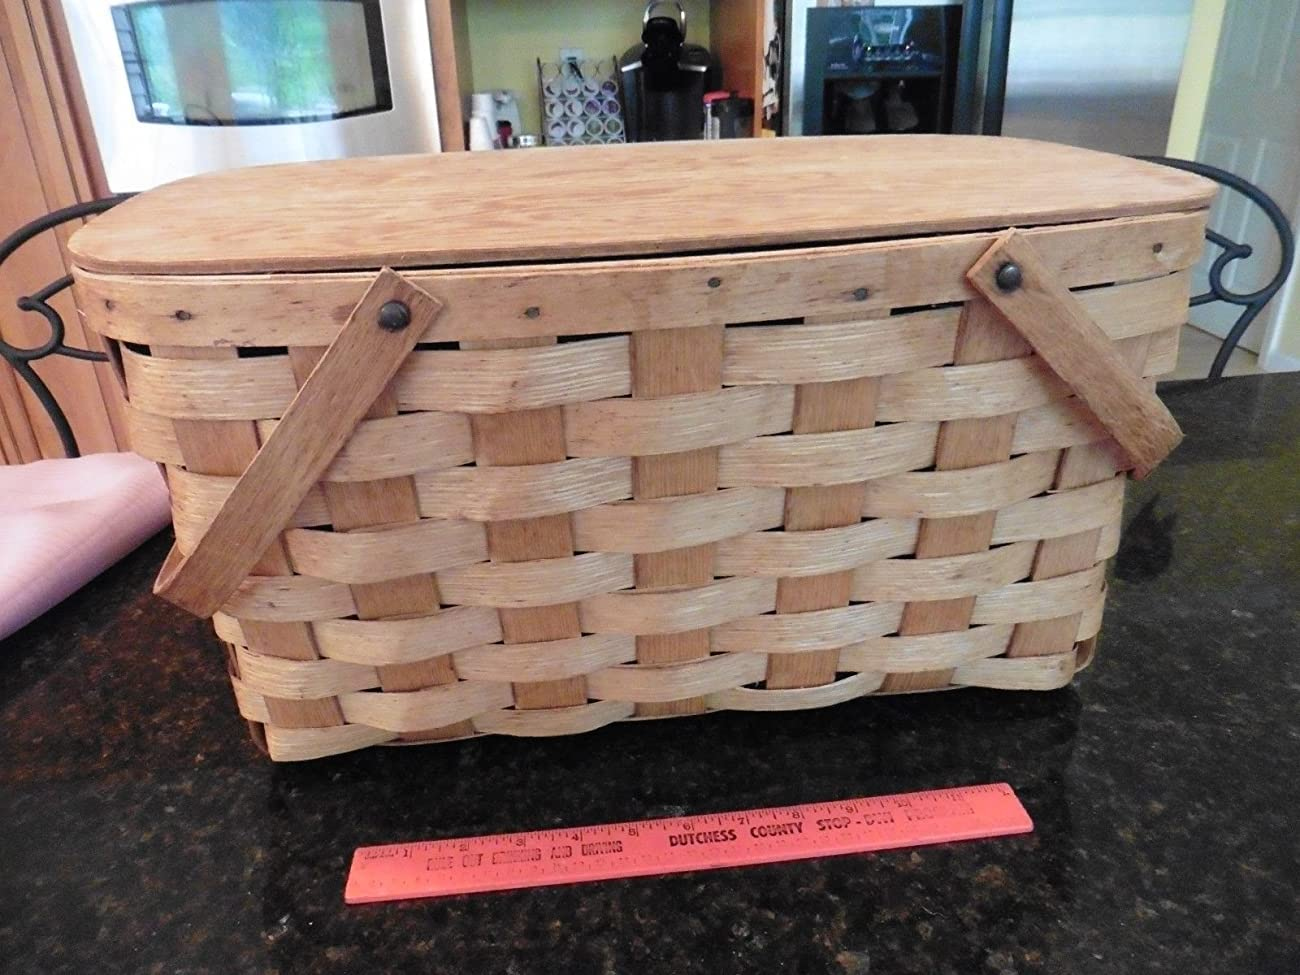 Vintage Picnic basket wooden X-large 2 handles hinged top apx 20